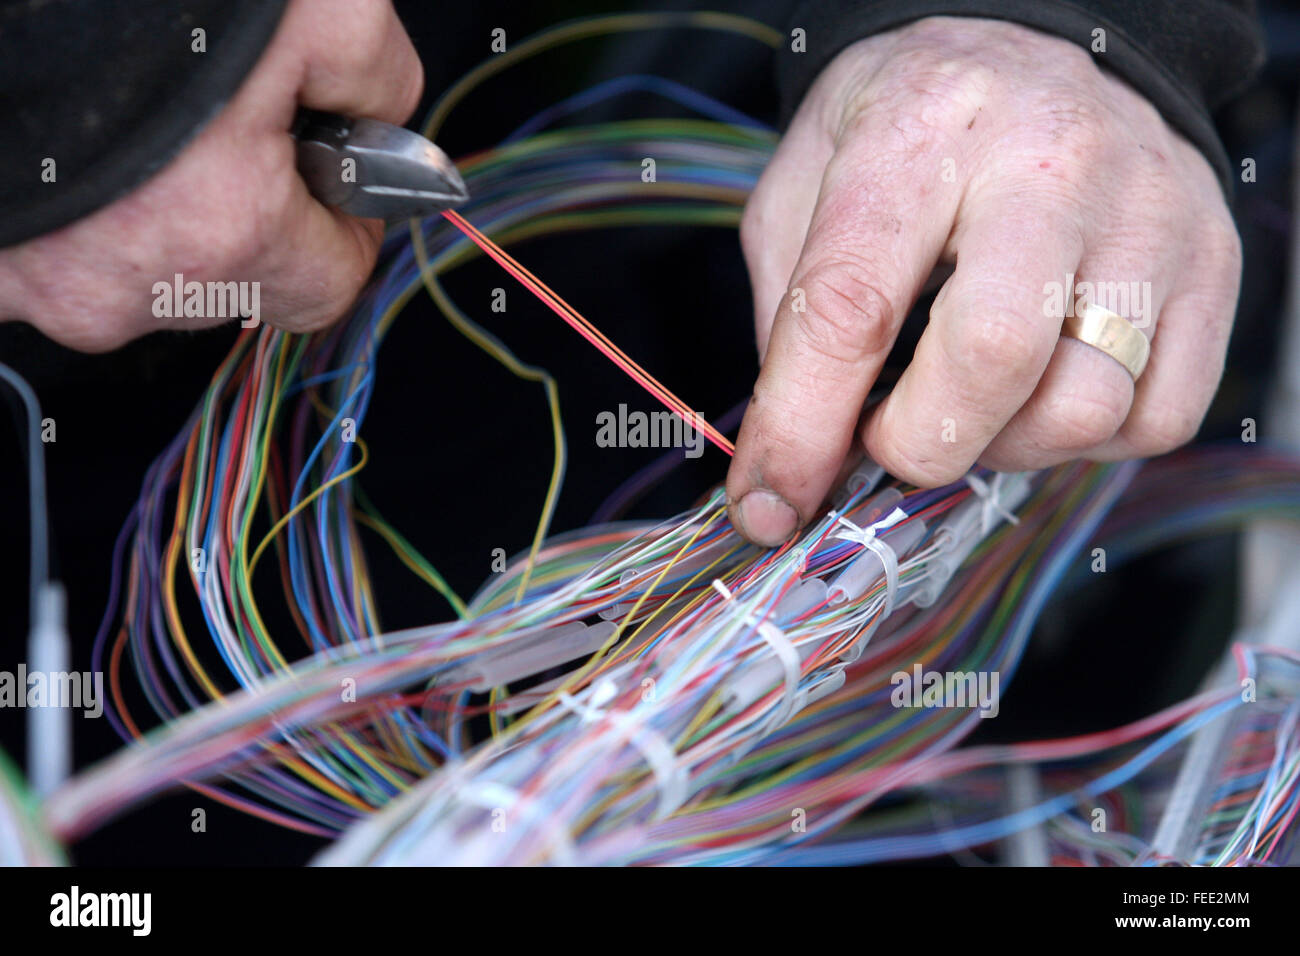 Pleasing Bt British Telecom Open Reach Engineer Fixing A Fault At A Junction Wiring Digital Resources Indicompassionincorg